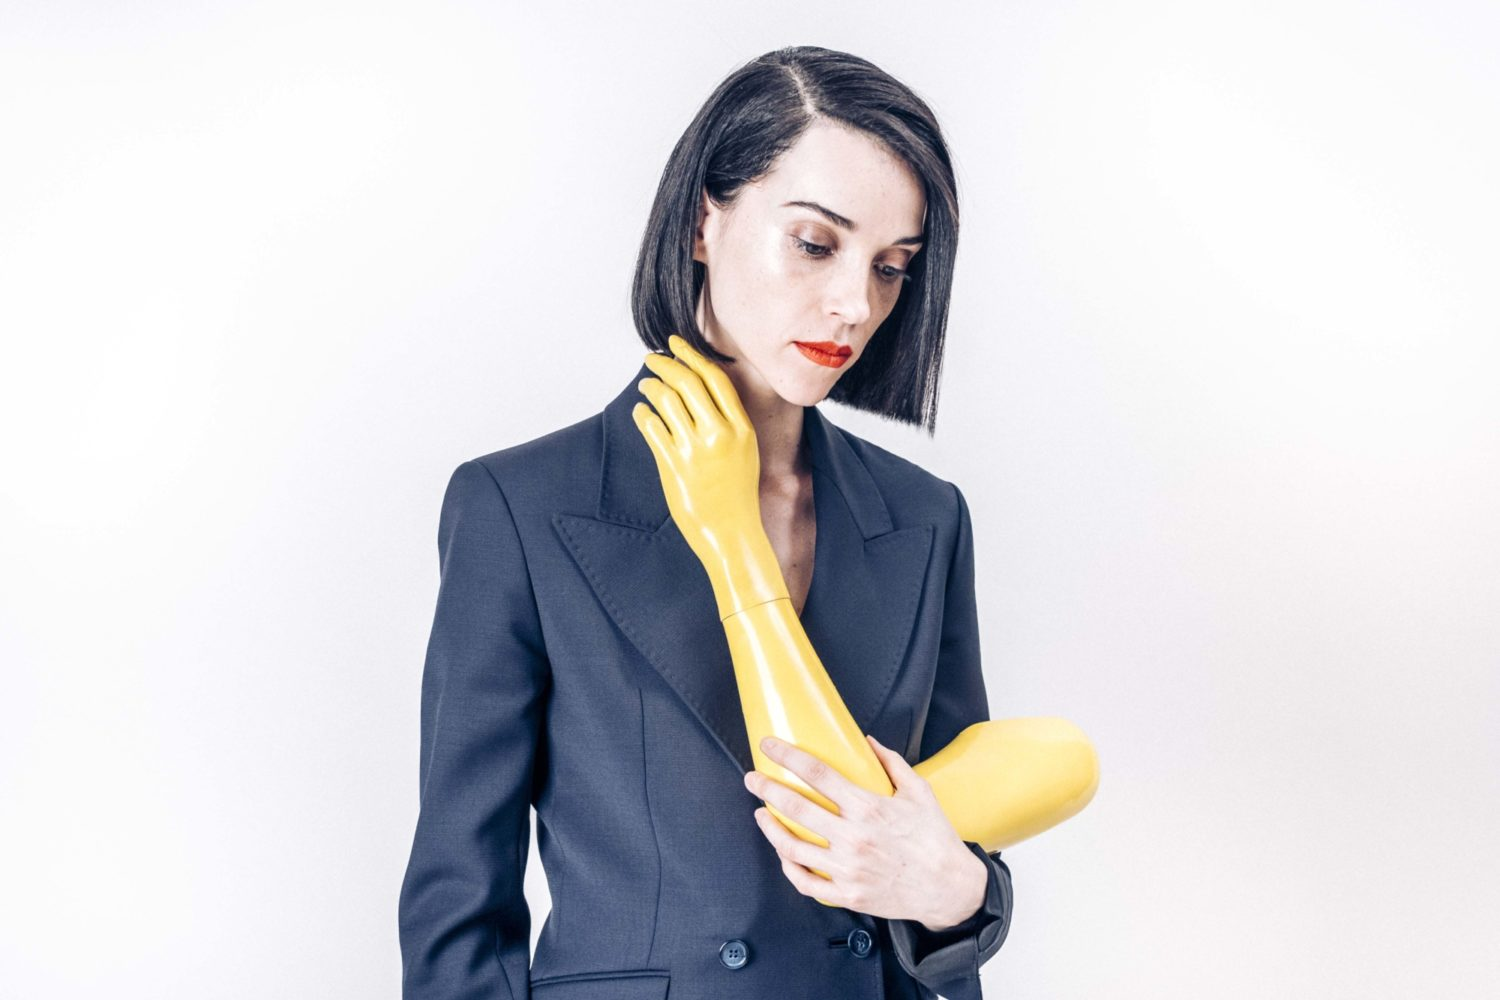 Laughing with fangs: St Vincent